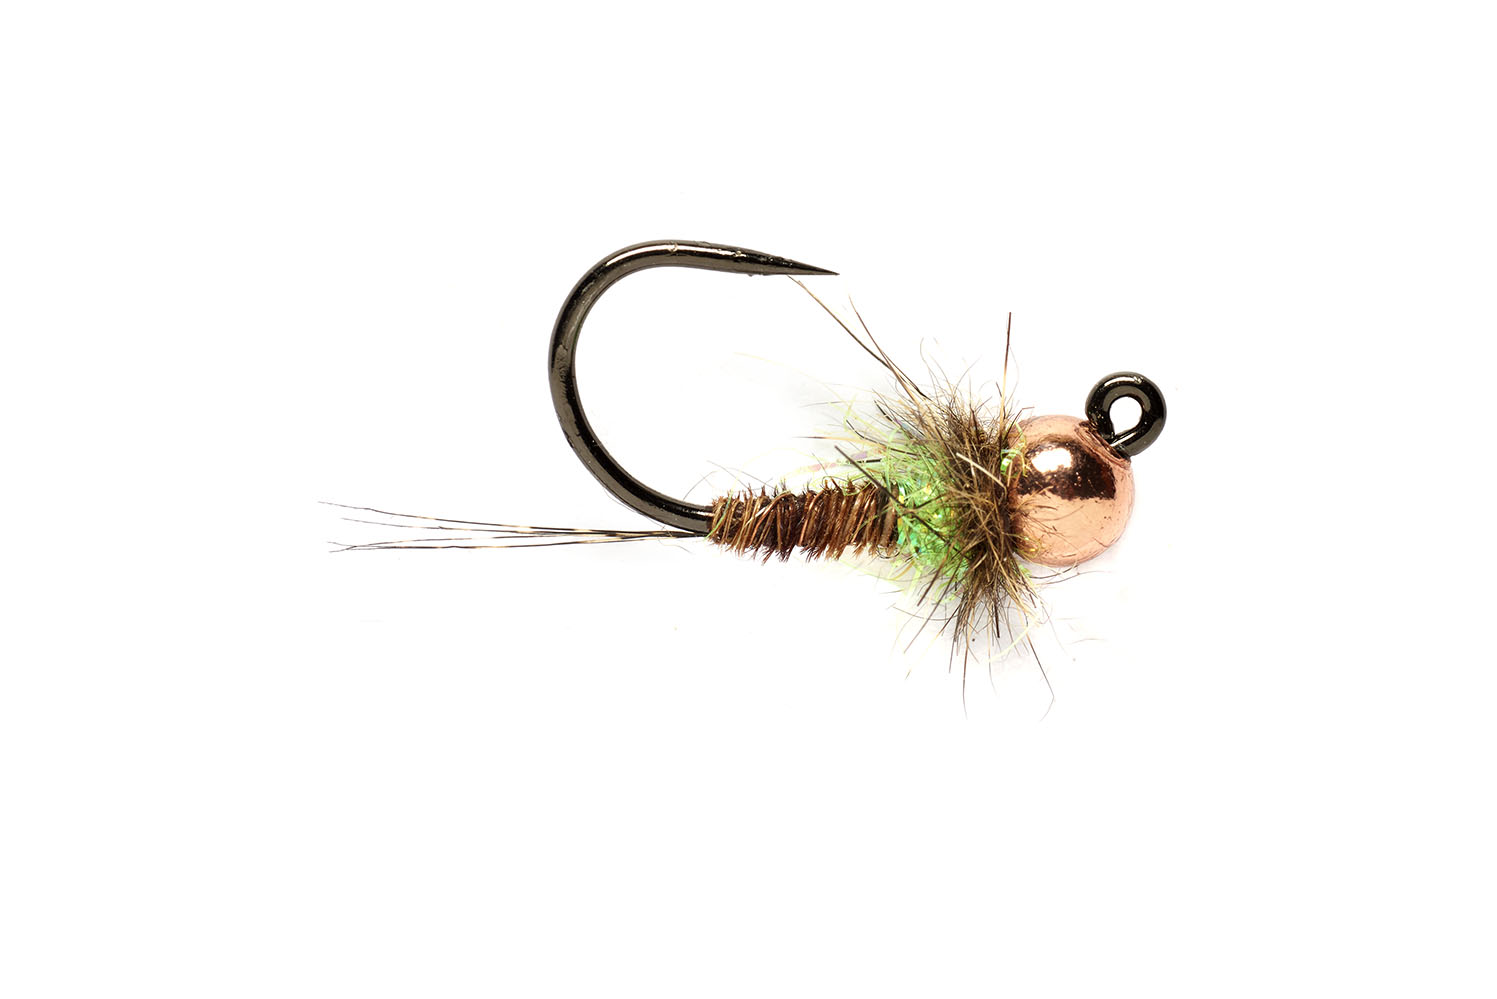 Hot Spot Pheasant Tail Jig Chartreuse Barbless